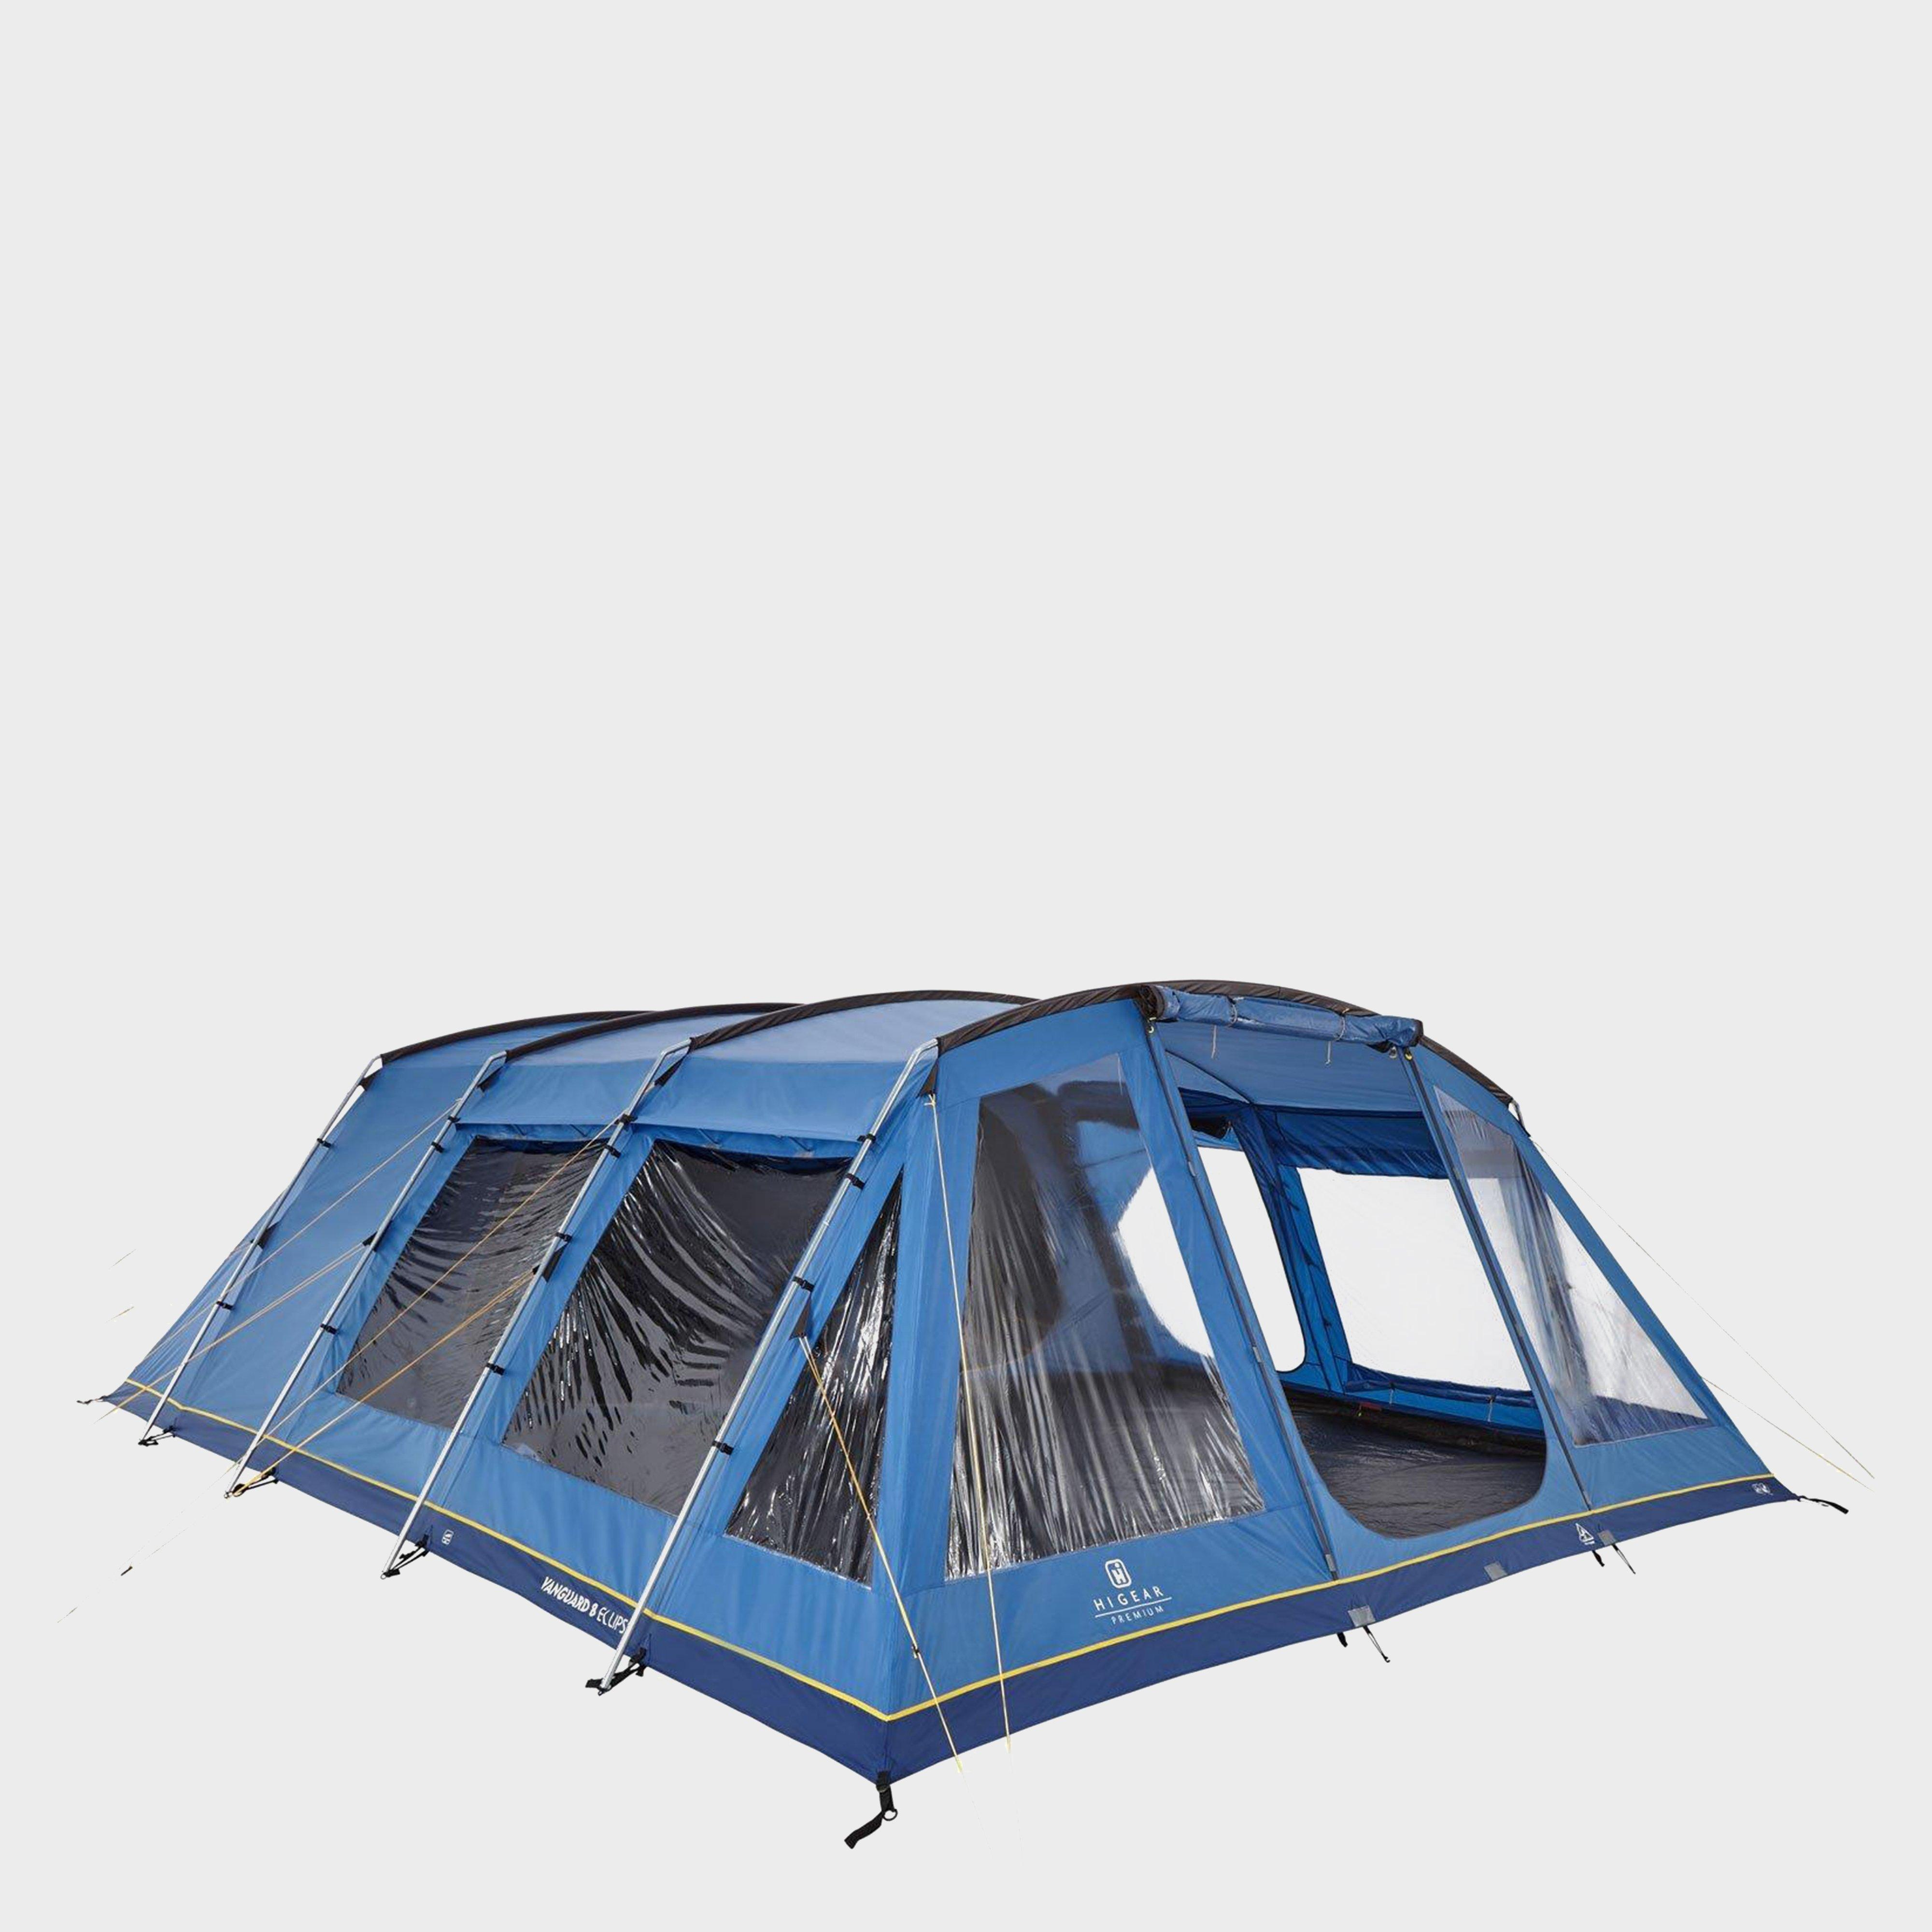 Hi-Gear Hi-Gear Vanguard 8 Nightfall Tent, Blue